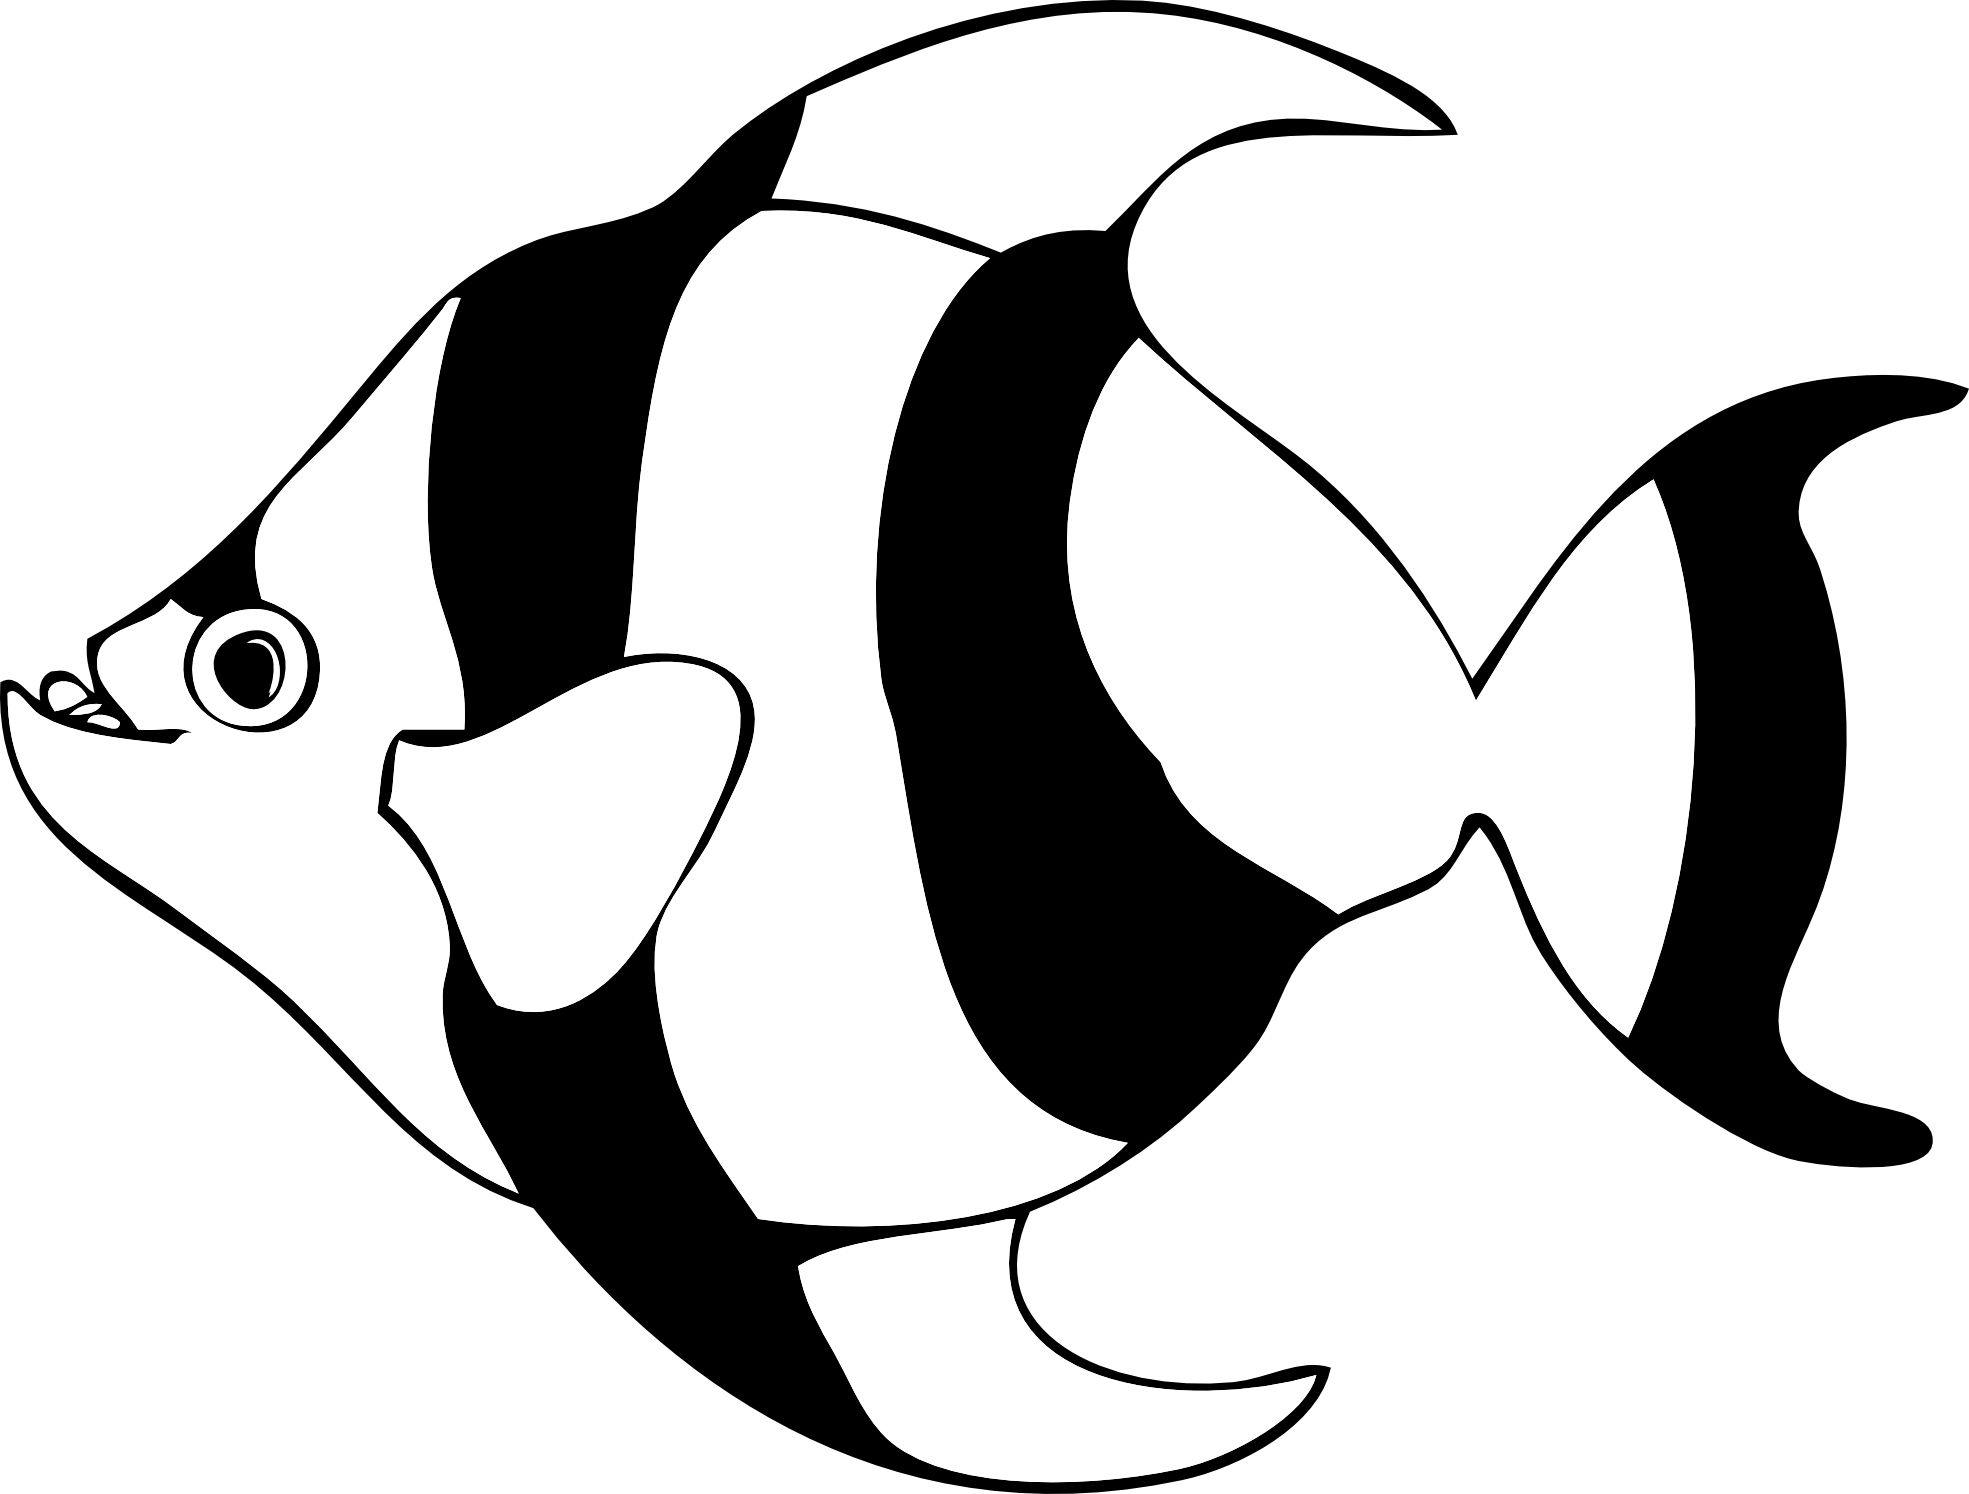 1969x1494 Fish Black And White Fish Outline Clipart Black And White Free